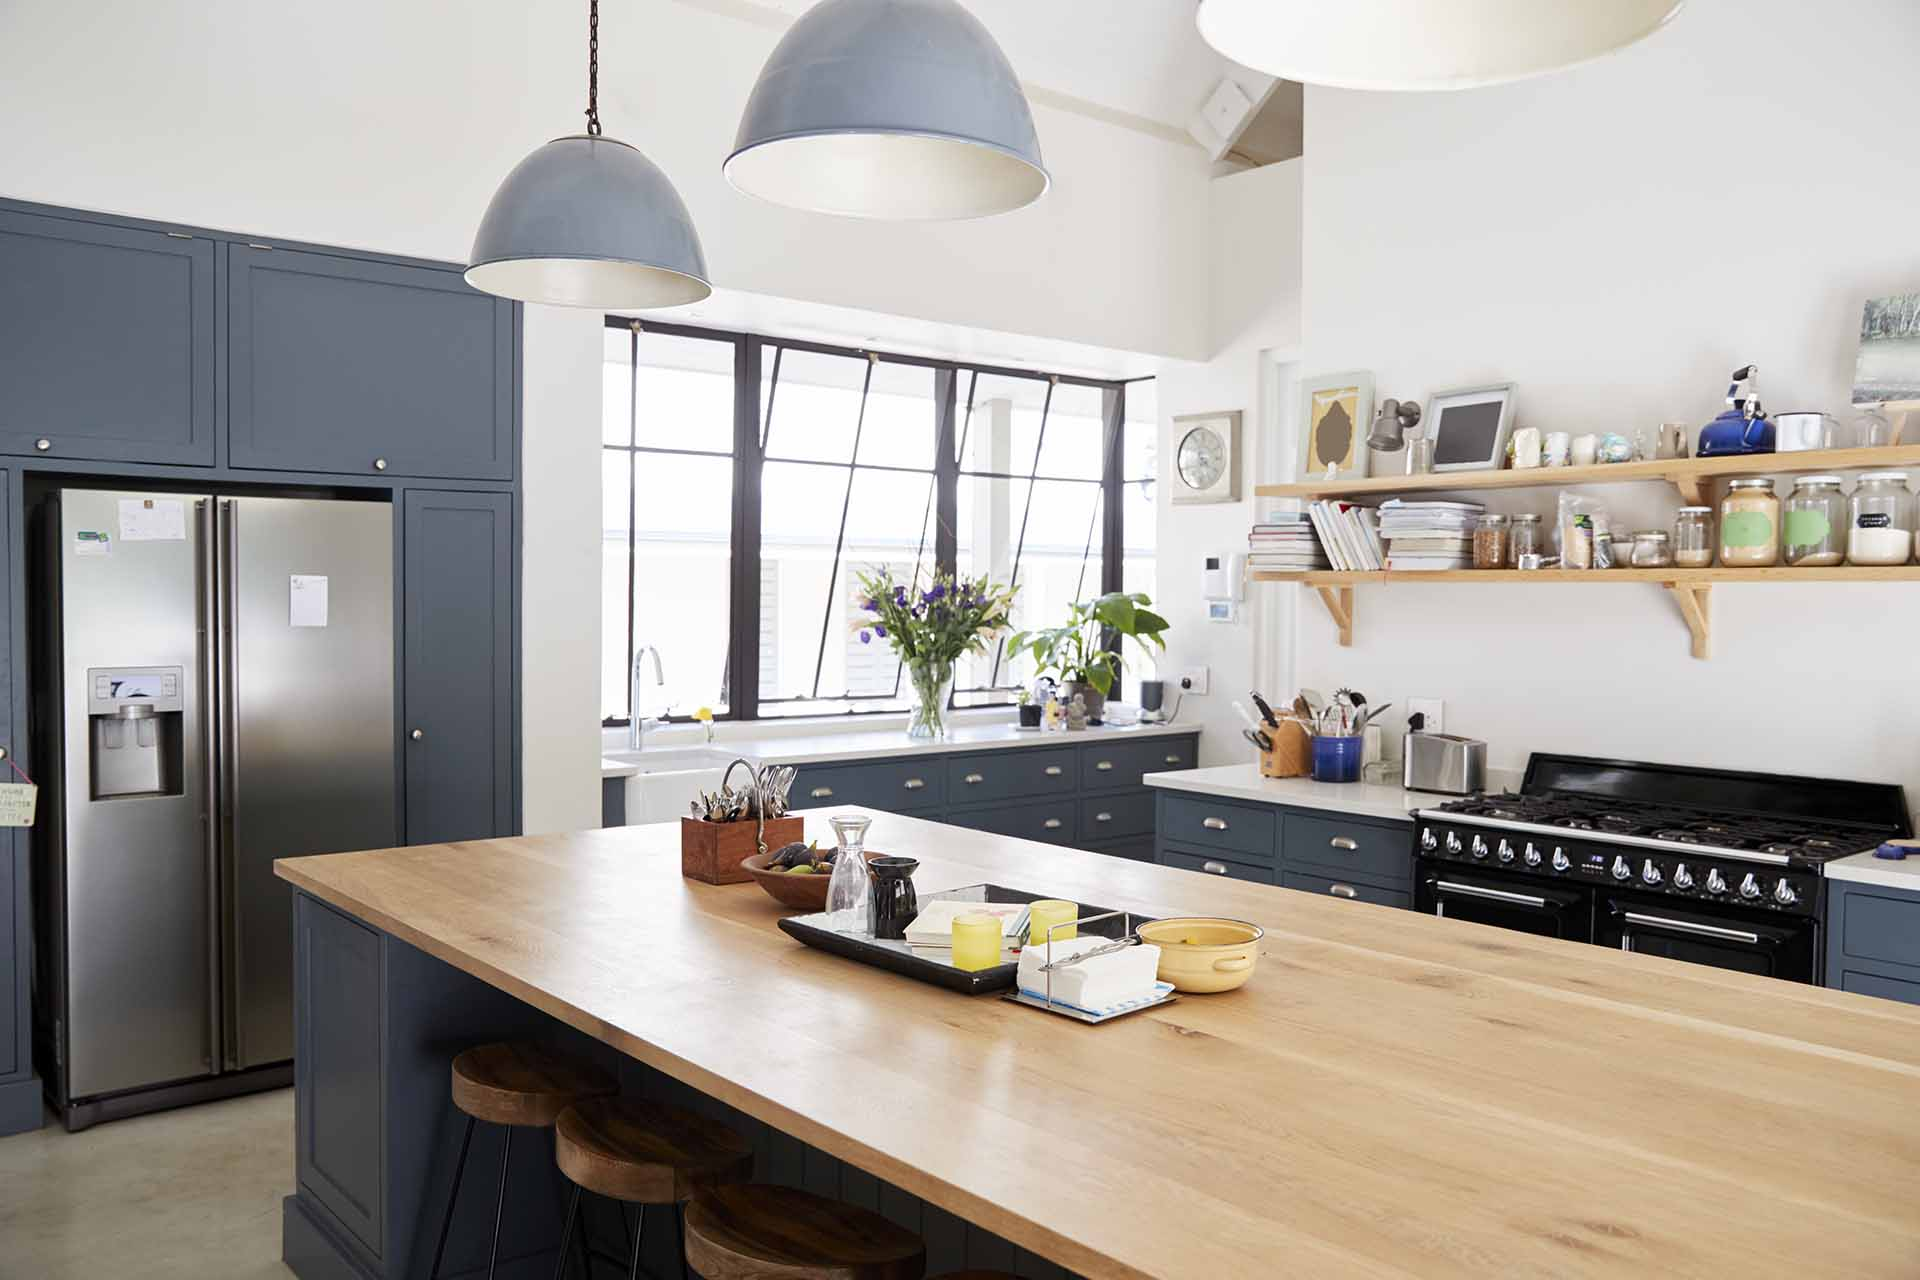 What is the most expensive part of a kitchen remodel?